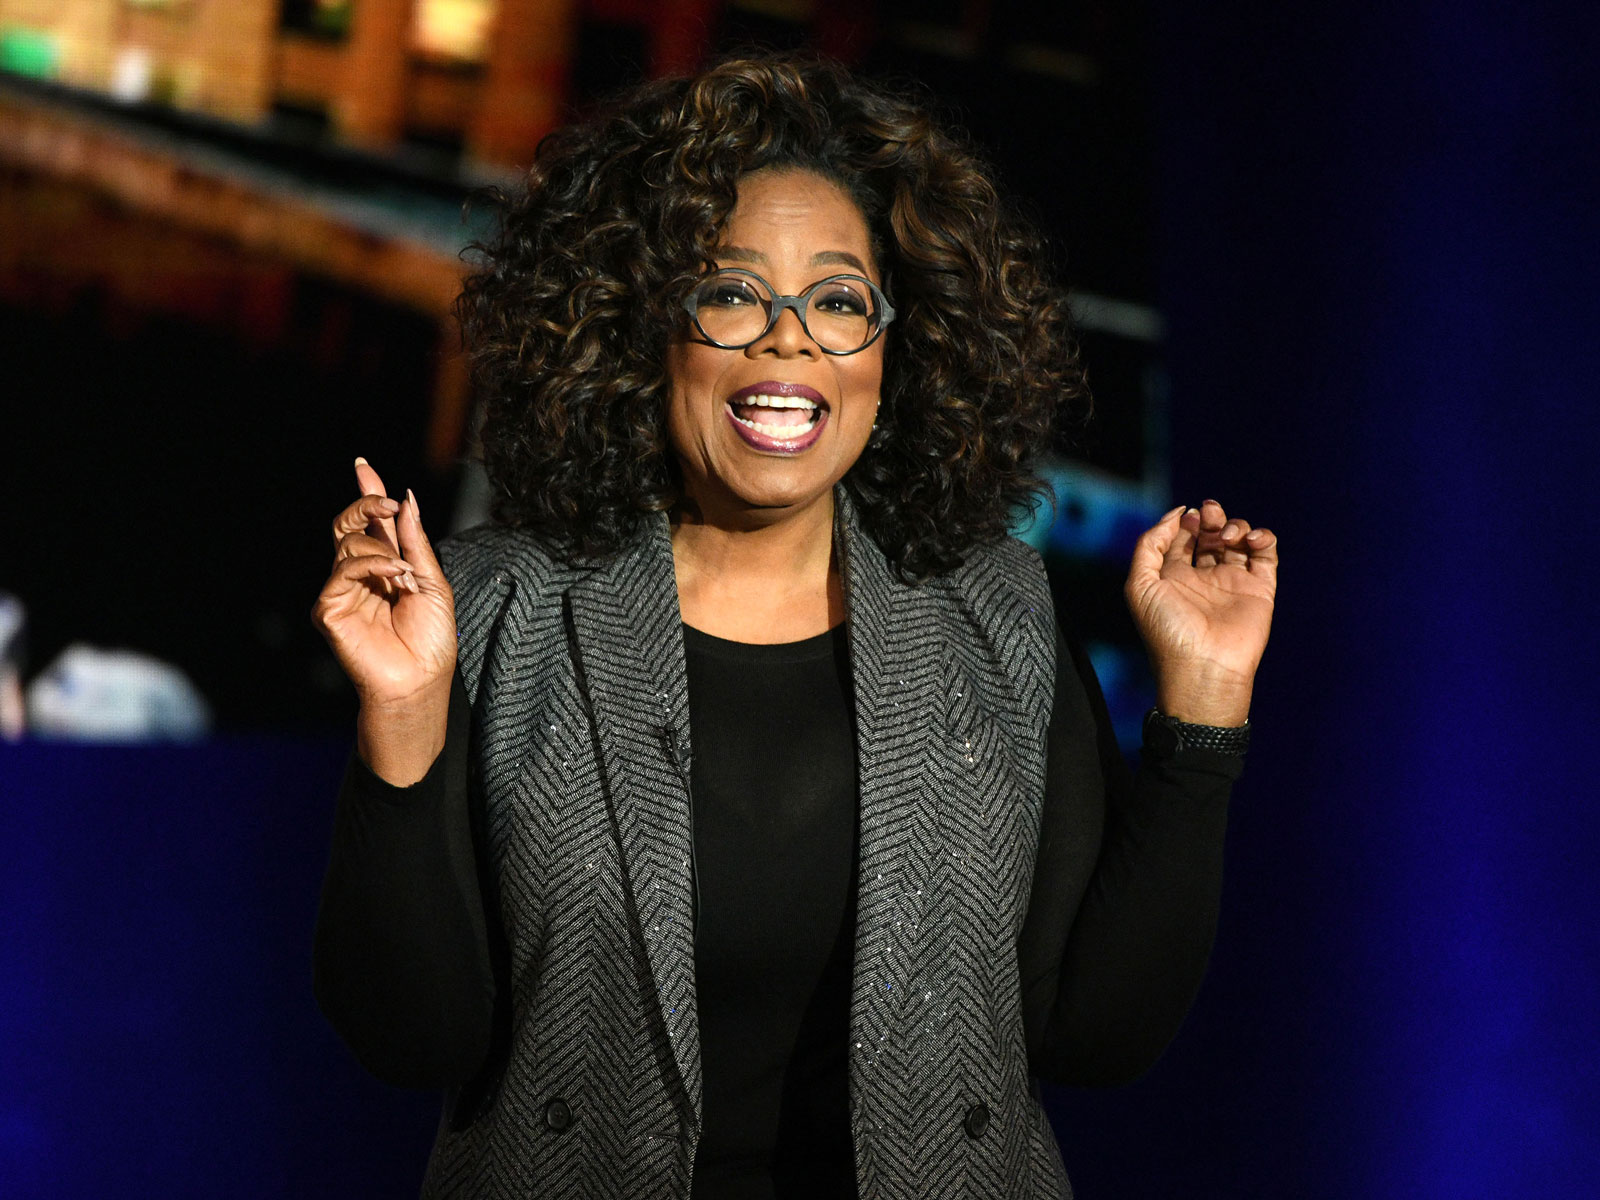 Oprah Travels with Her Own Avocados (Because Buying Them Is Too Expensive)